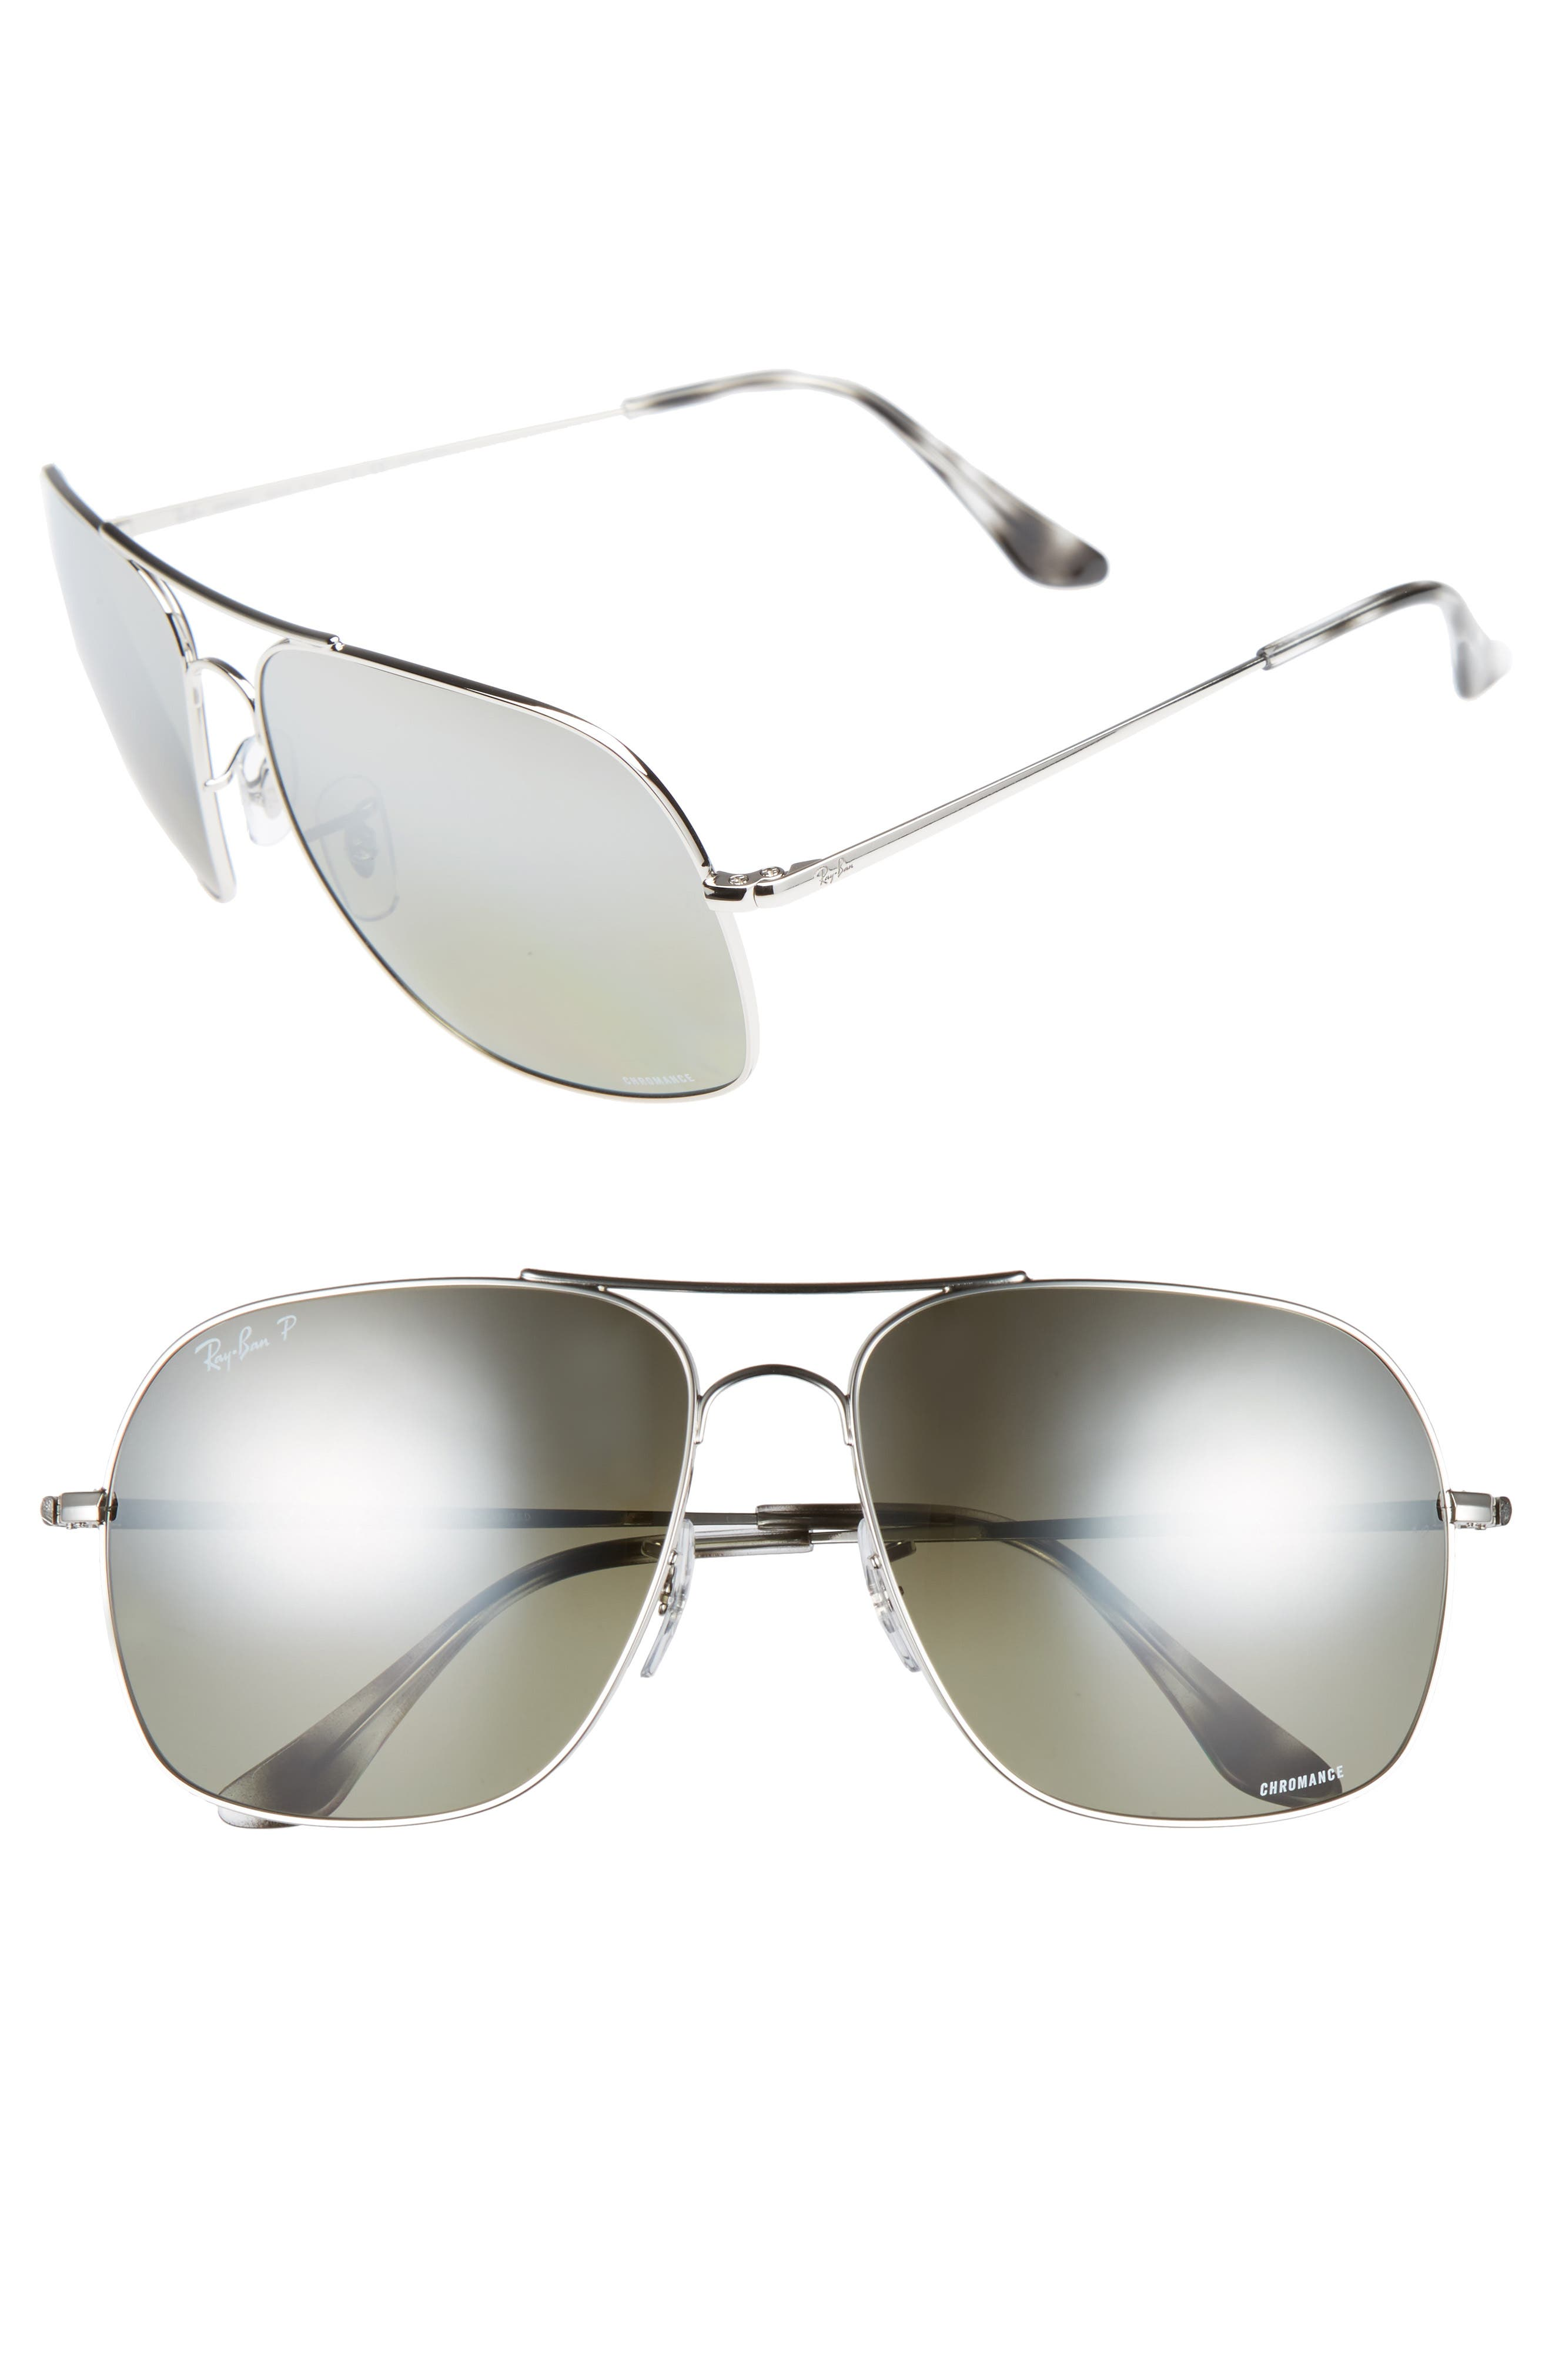 61mm Mirrored Lens Polarized Aviator Sunglasses,                         Main,                         color, 040